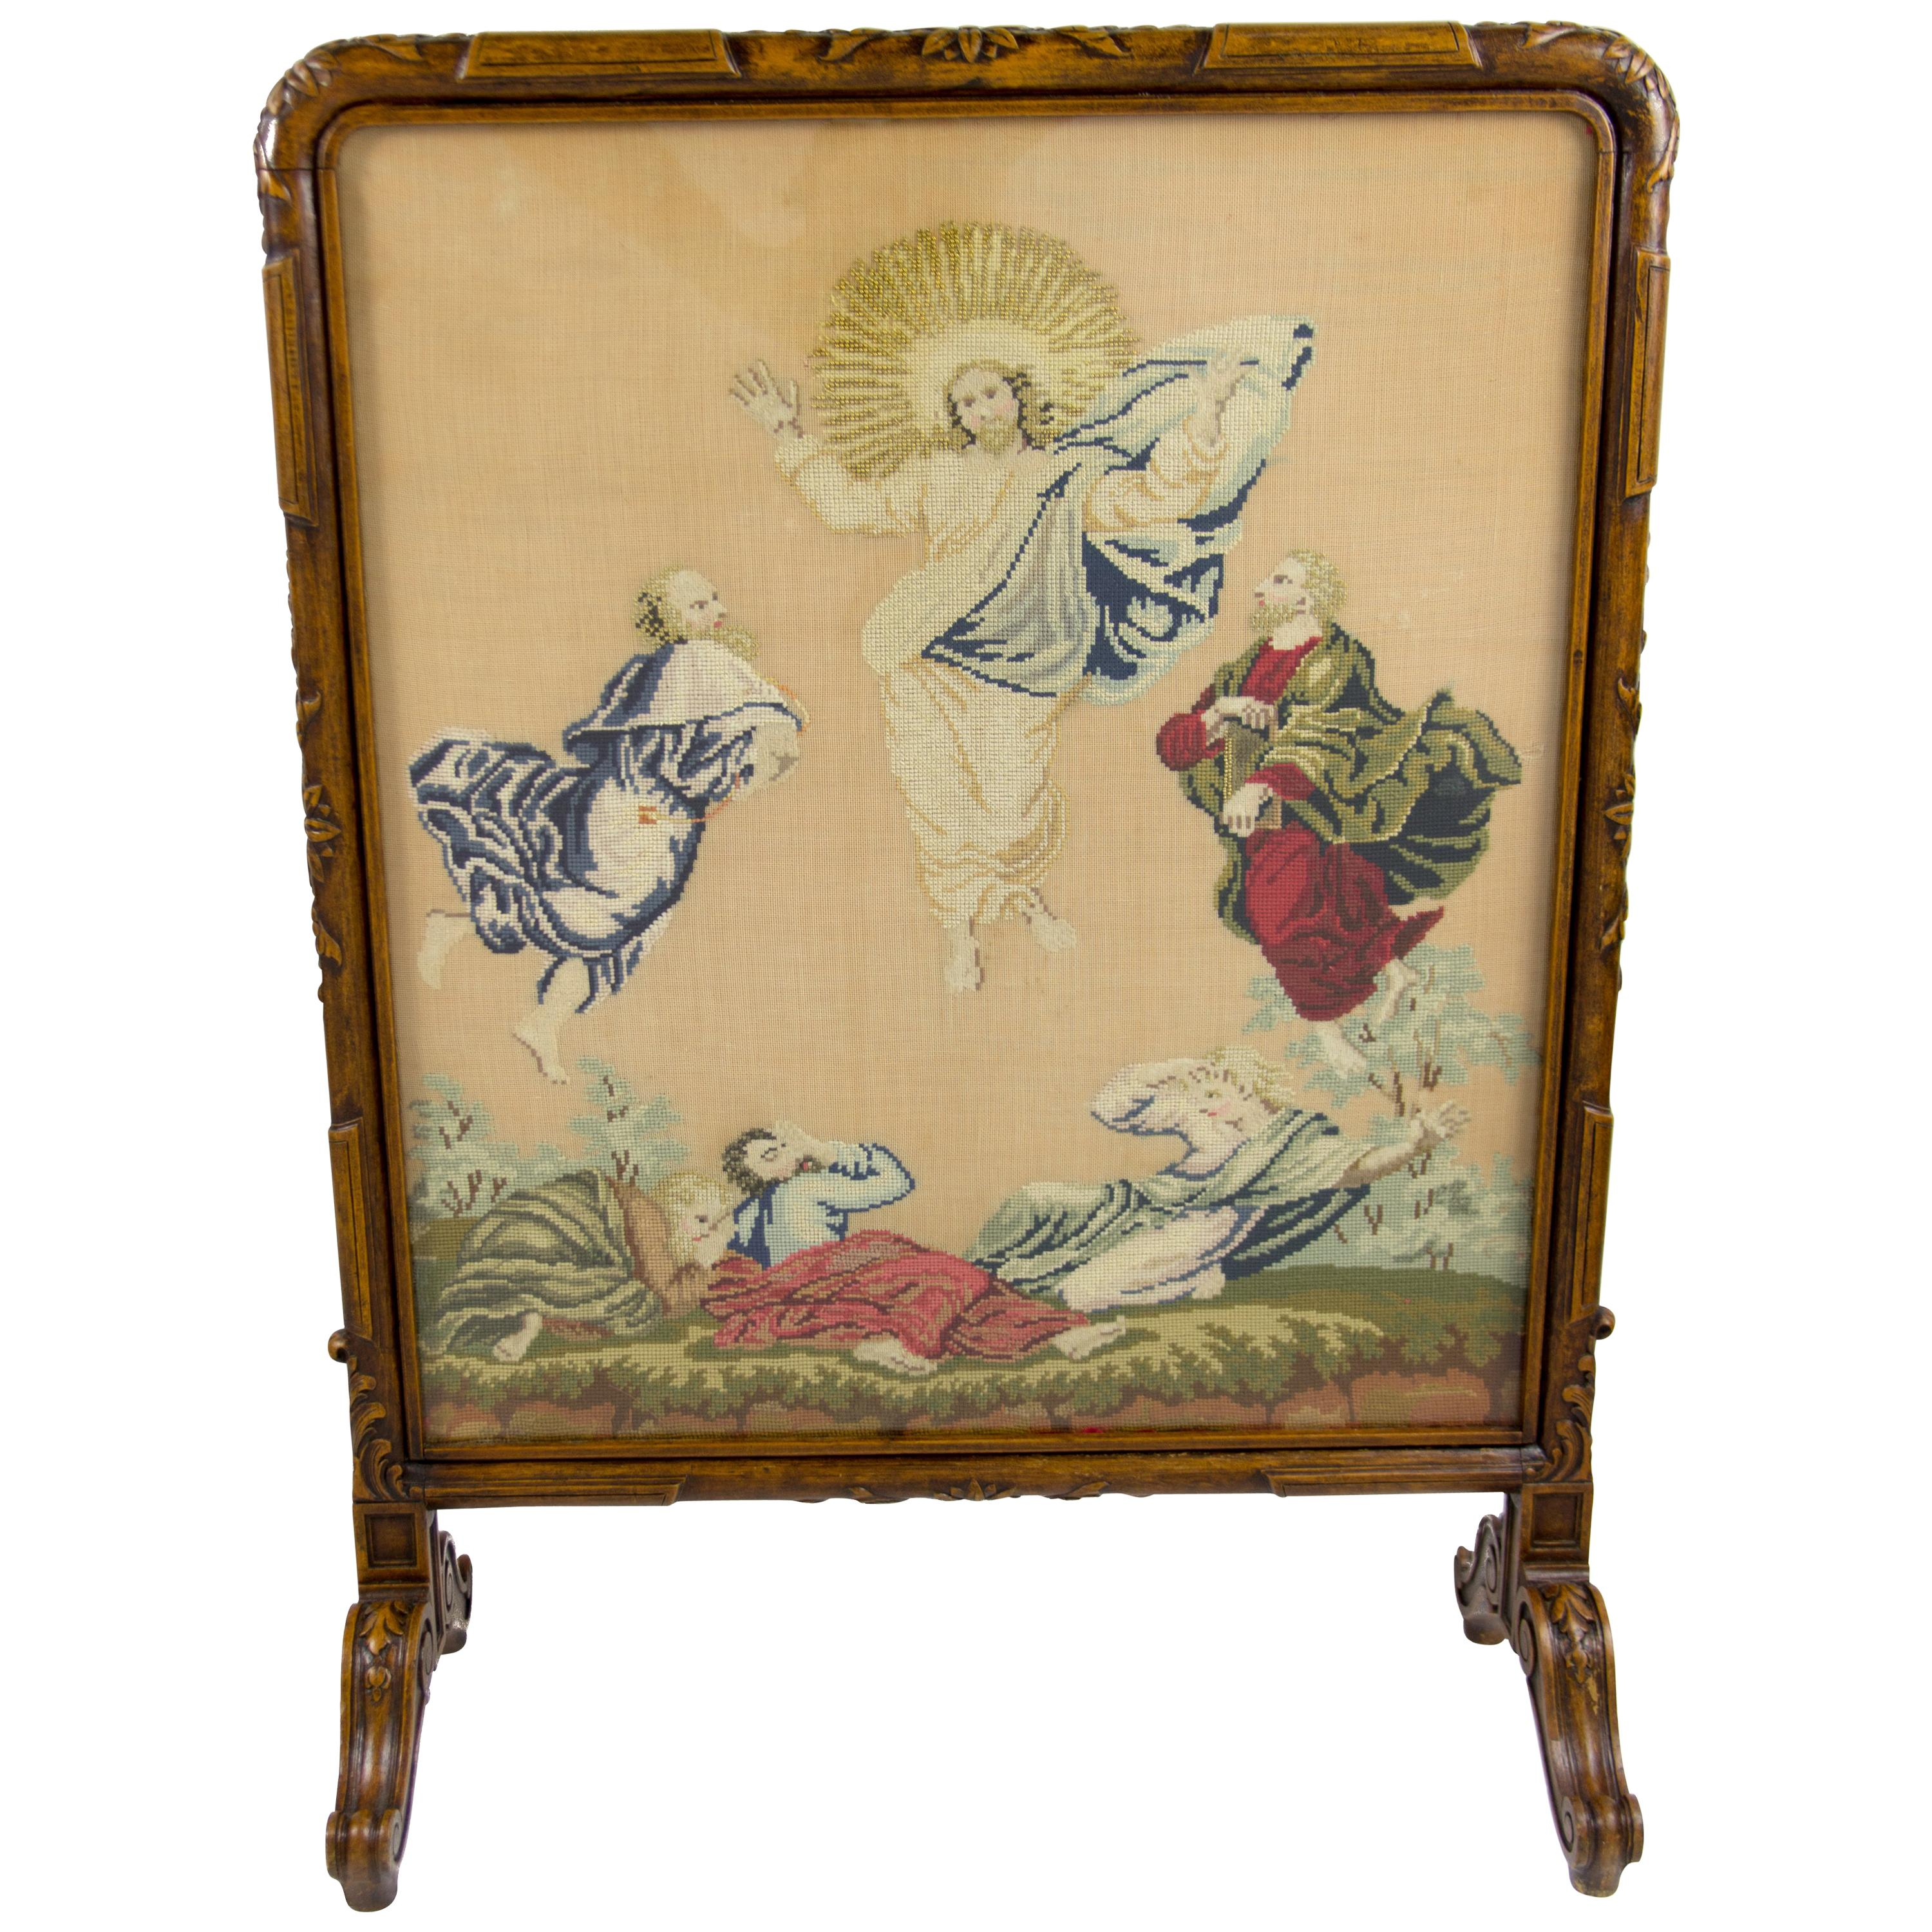 French Carved Walnut Fire Screen with Needlepoint Panel